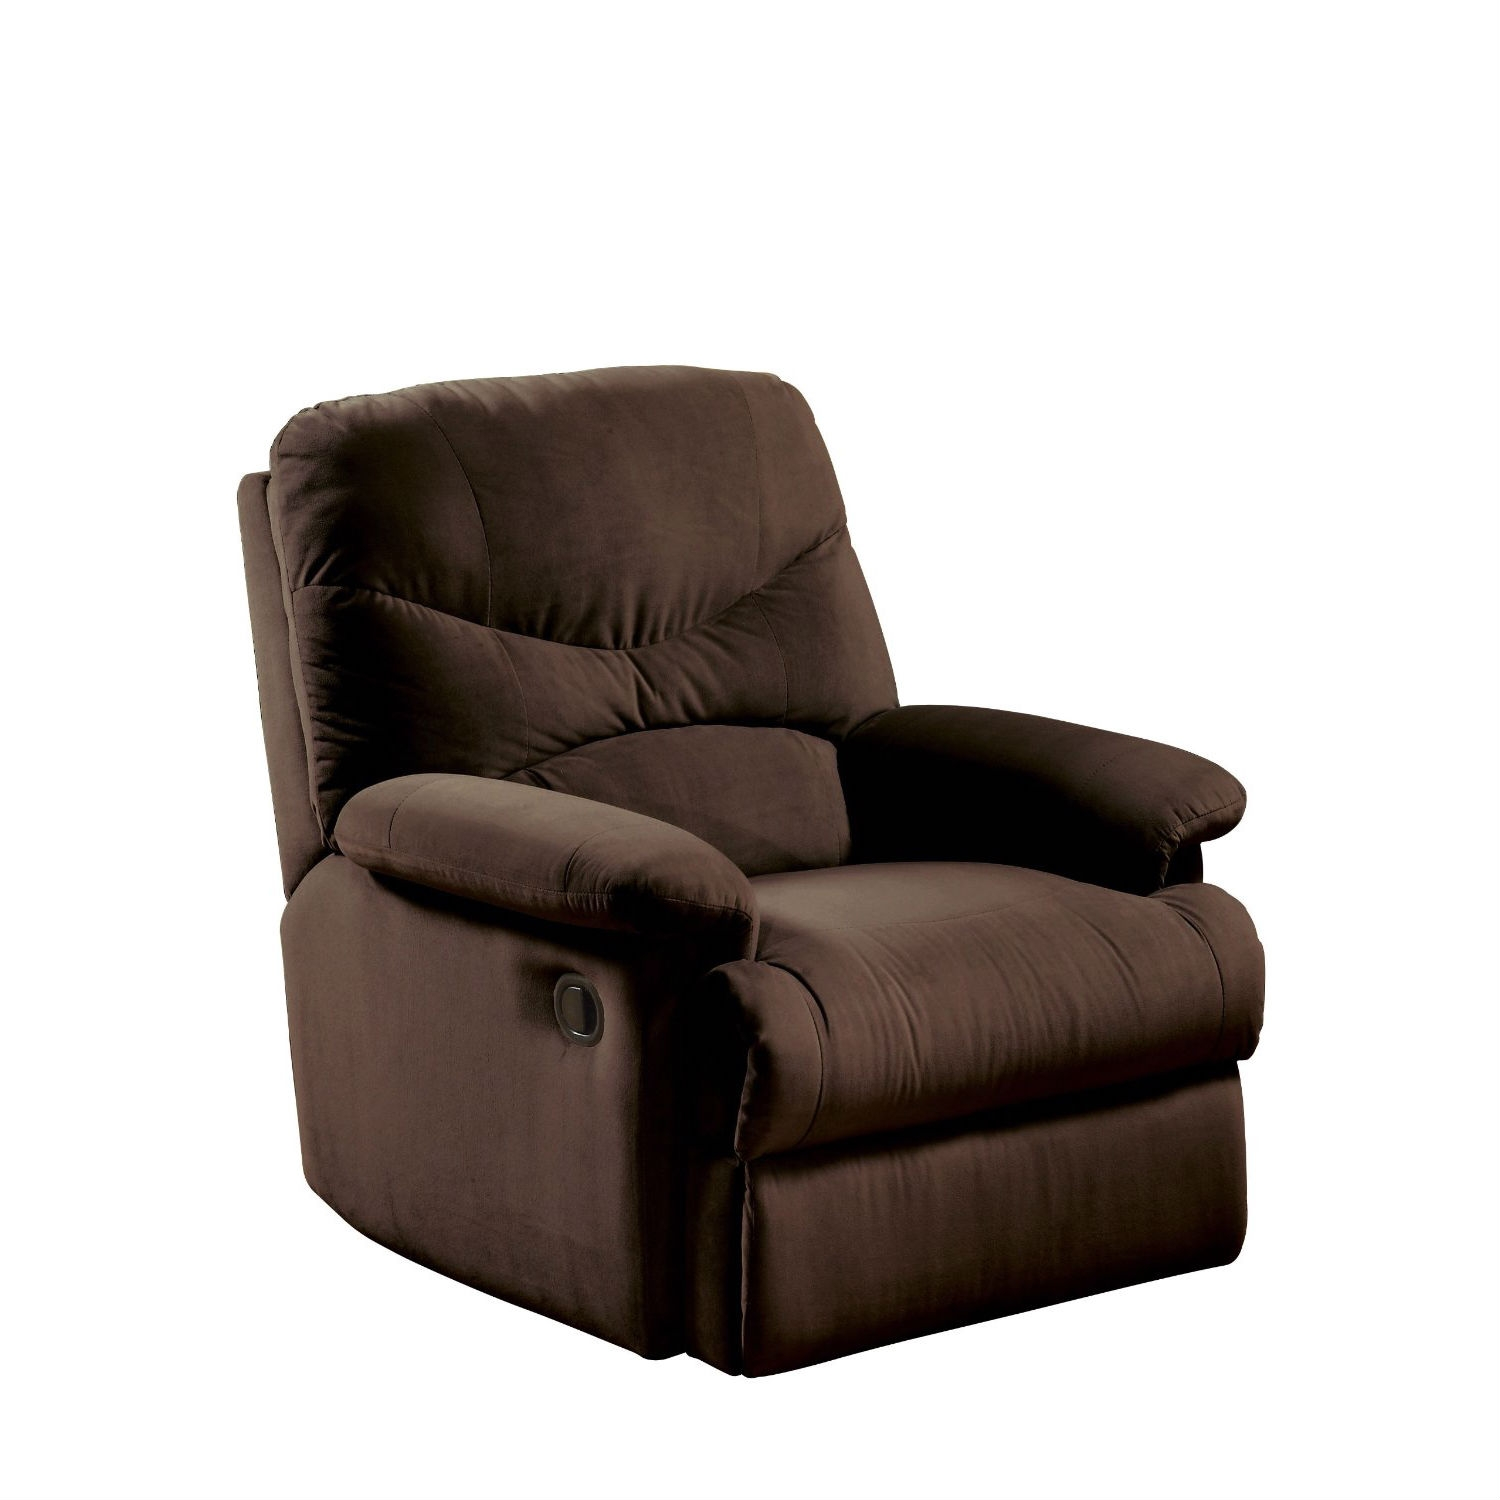 Microfiber Living Room Chairs Creativeworks Home Decor Recliners Leather Recliner